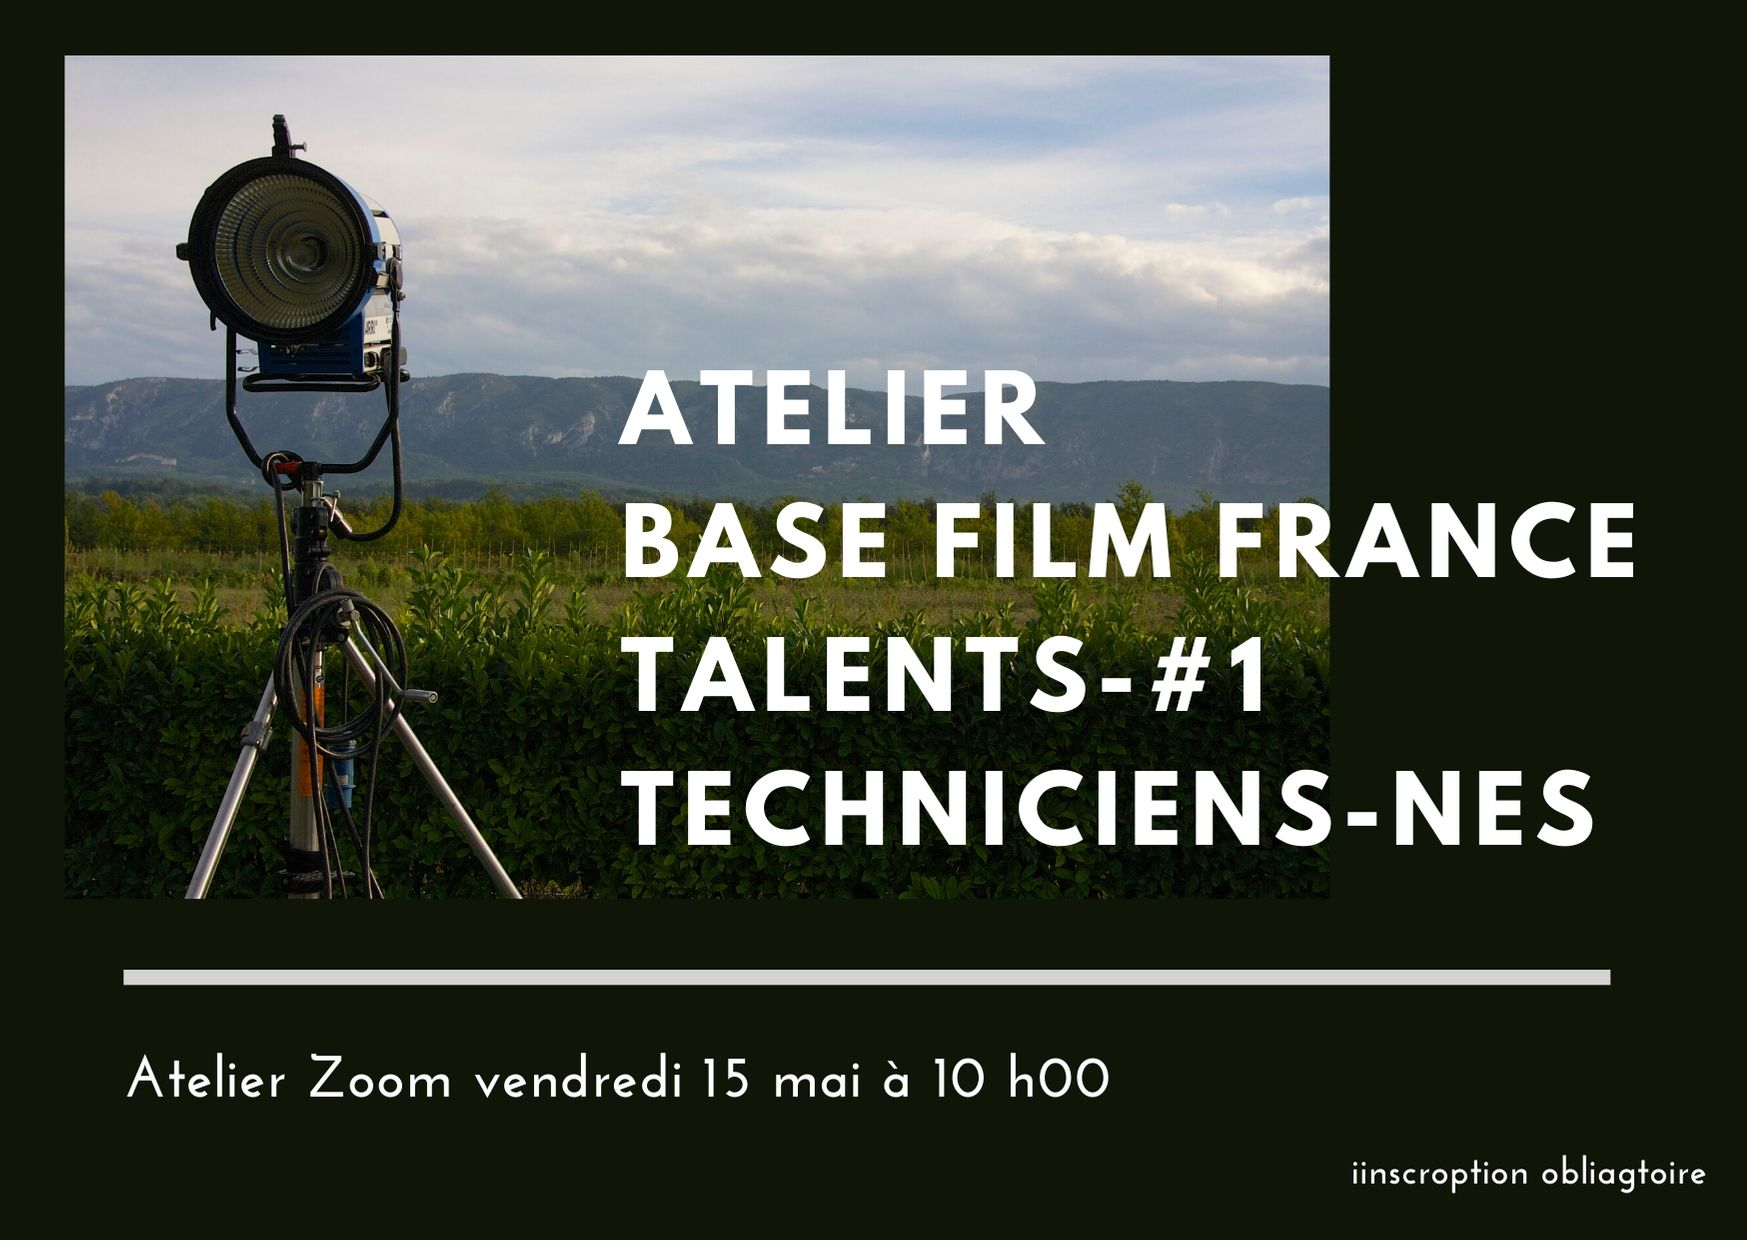 Atelier zoom base Film France Talents -#1 techniciens-nes